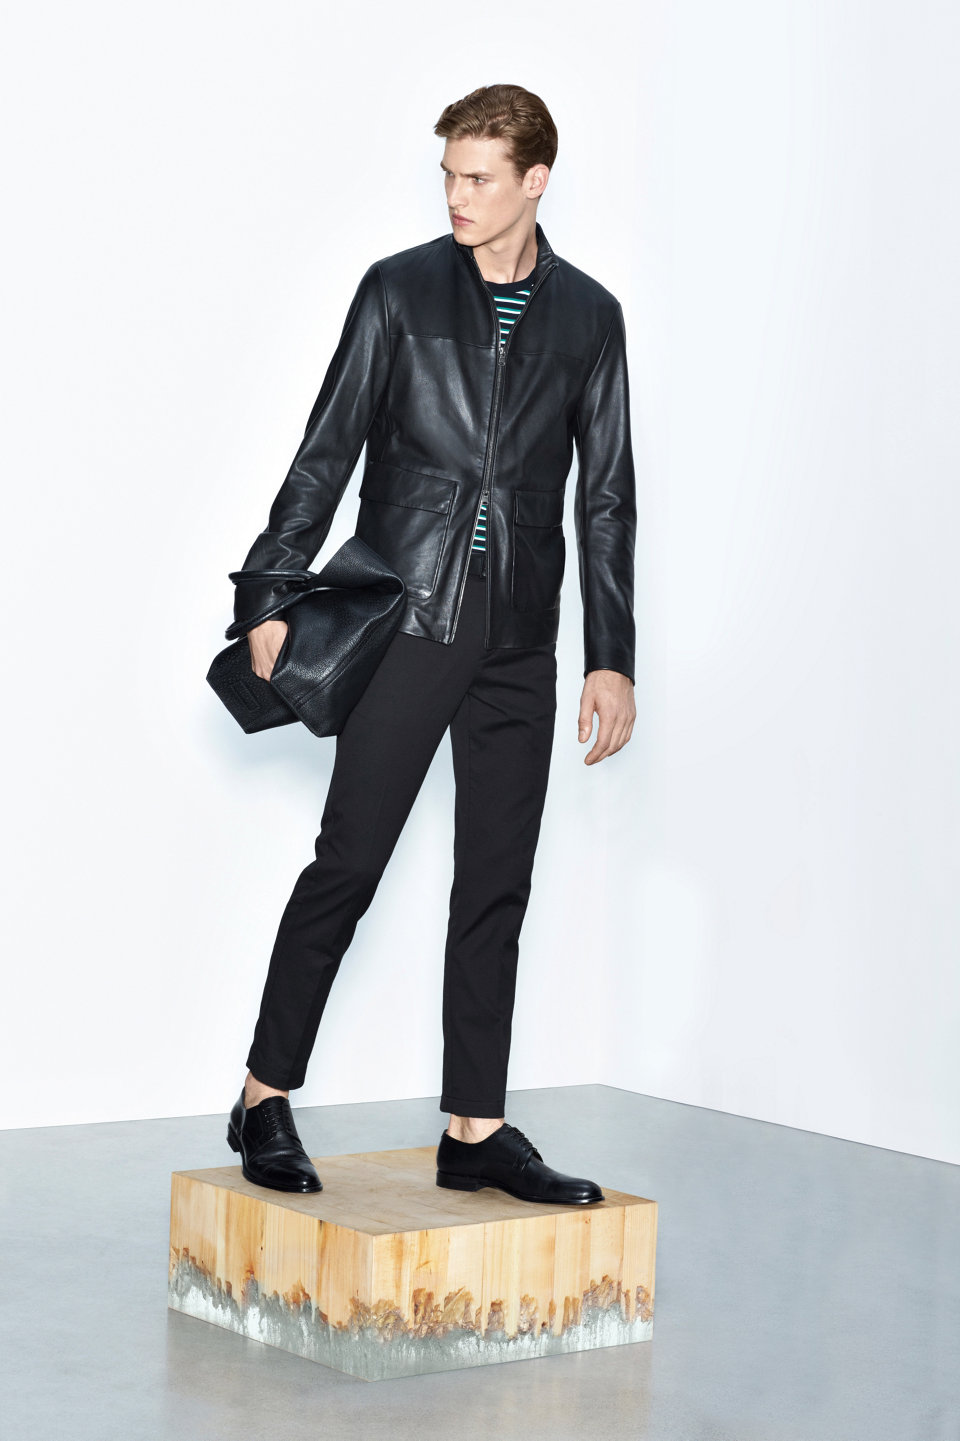 Black leather jacket, black trousers and black leather shoes by BOSS